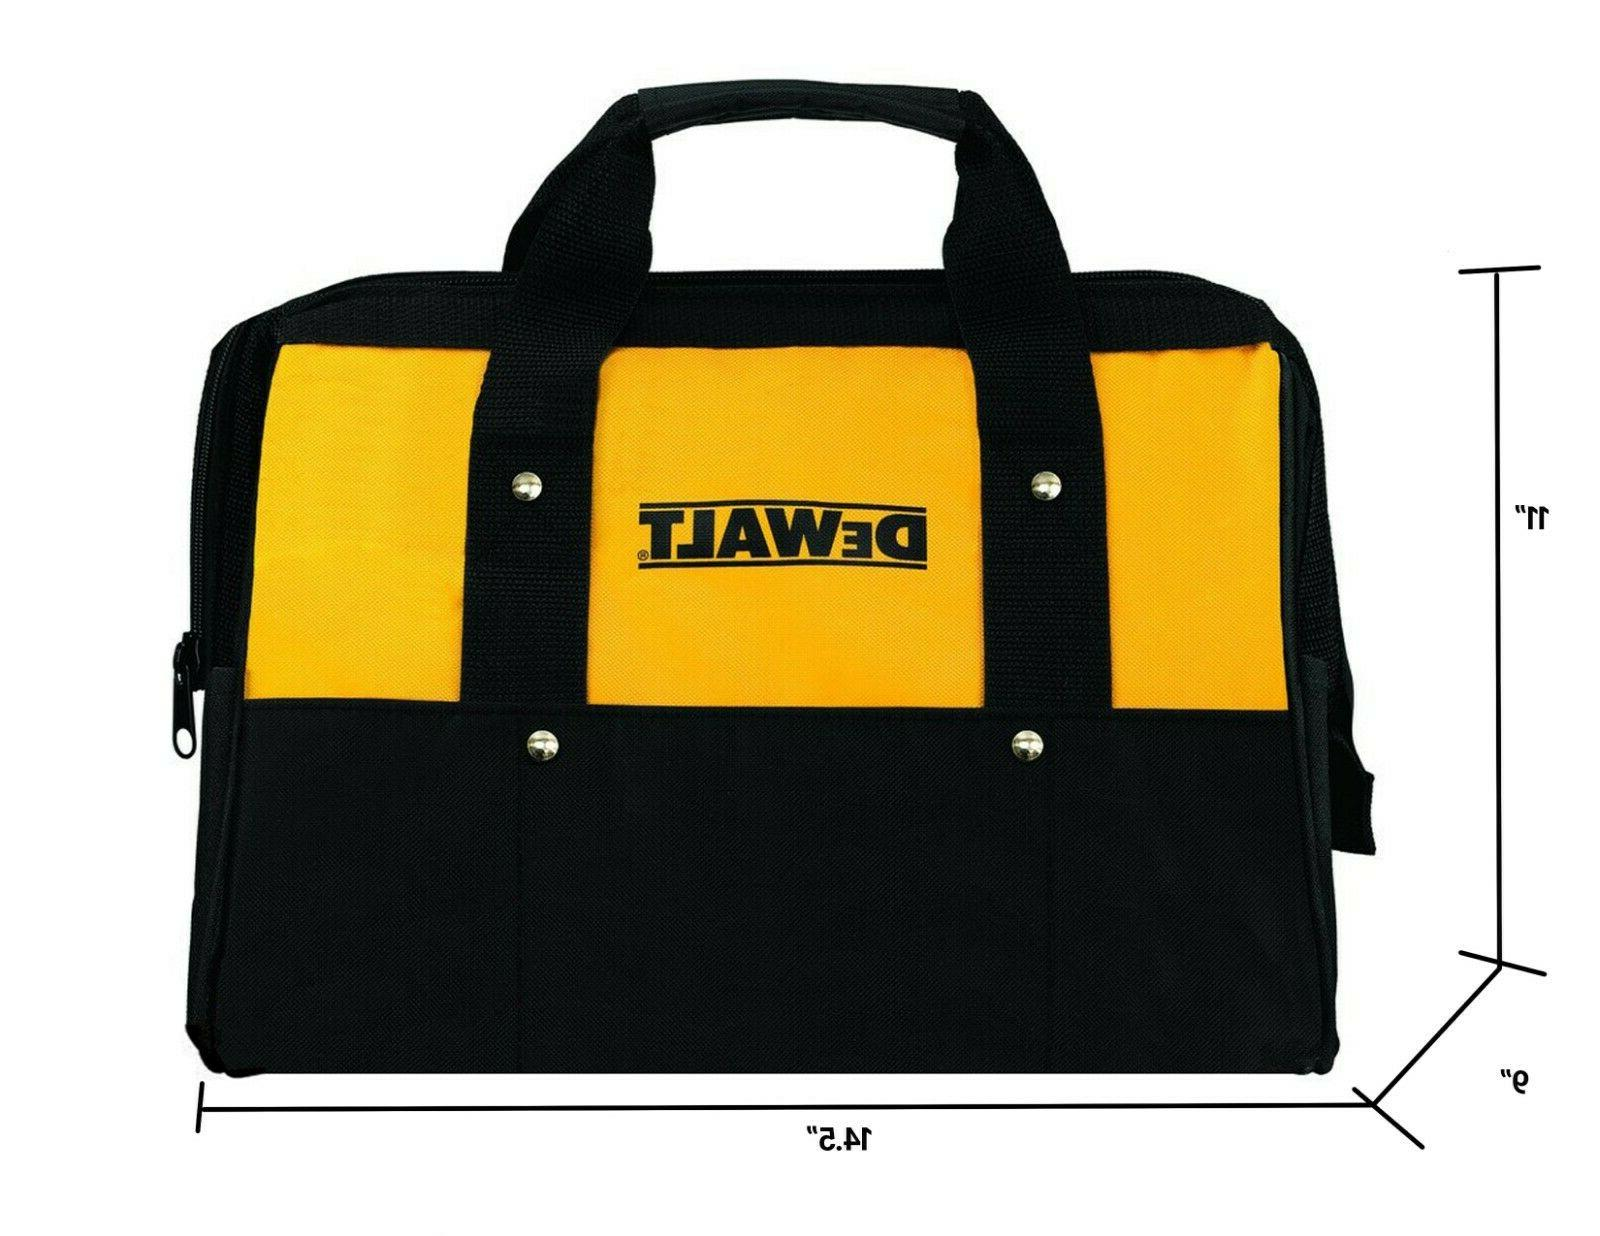 tool bag heavy duty nylon med 14